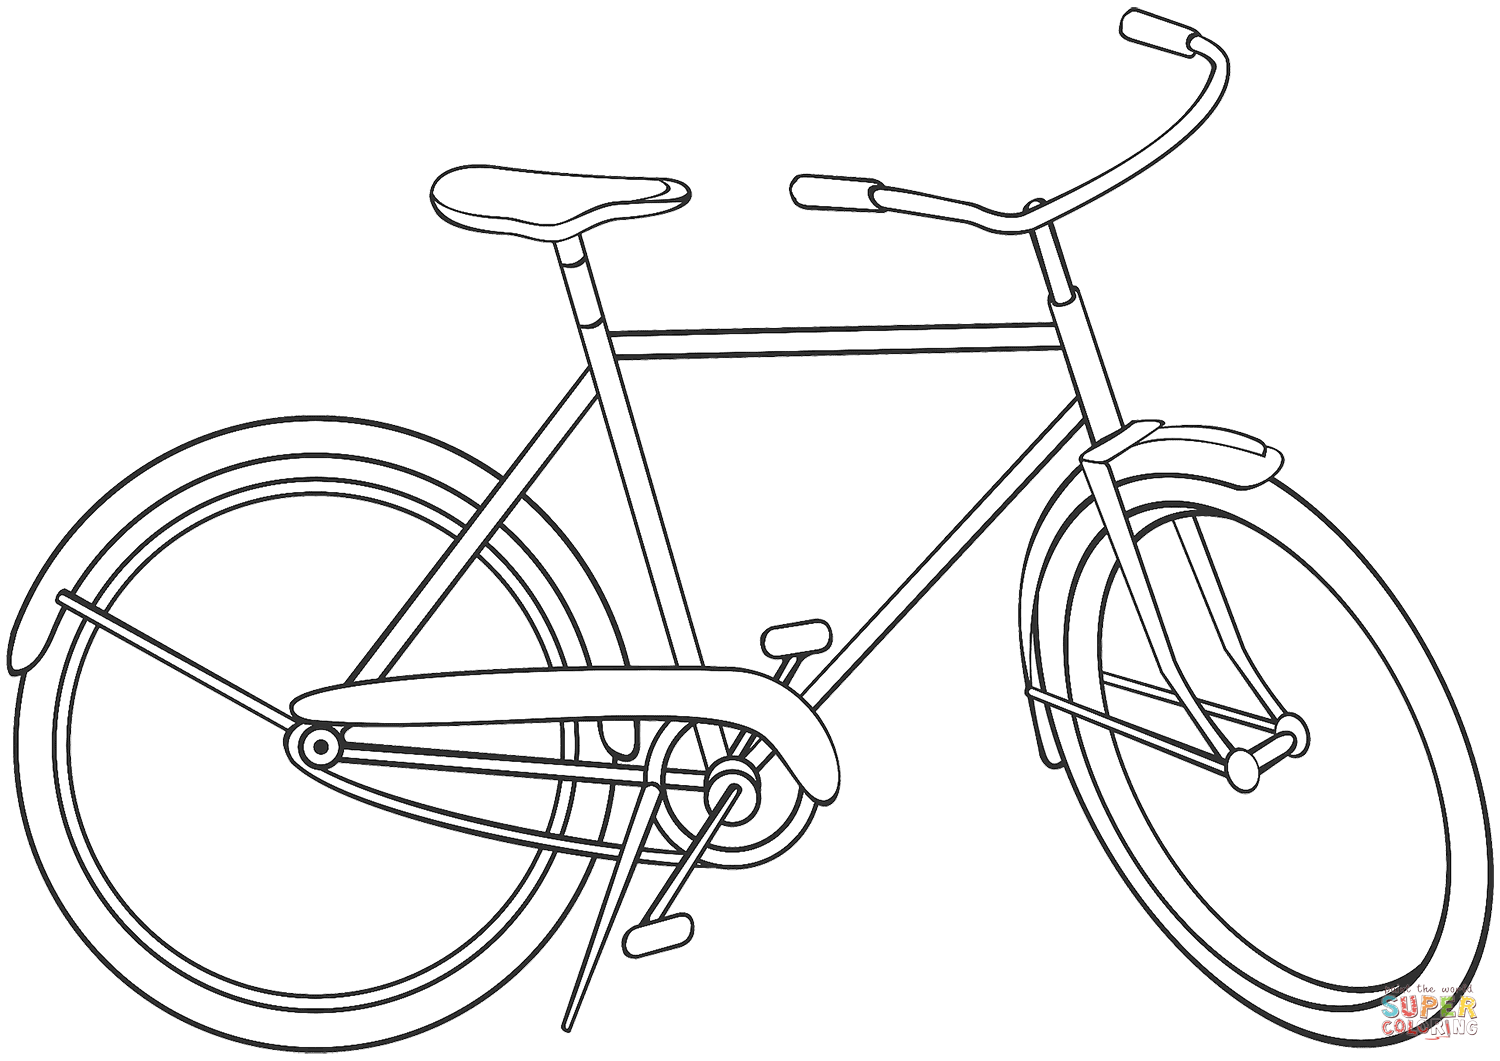 bike coloring page riding bike coloring pages coloring pages cartoon bike coloring page